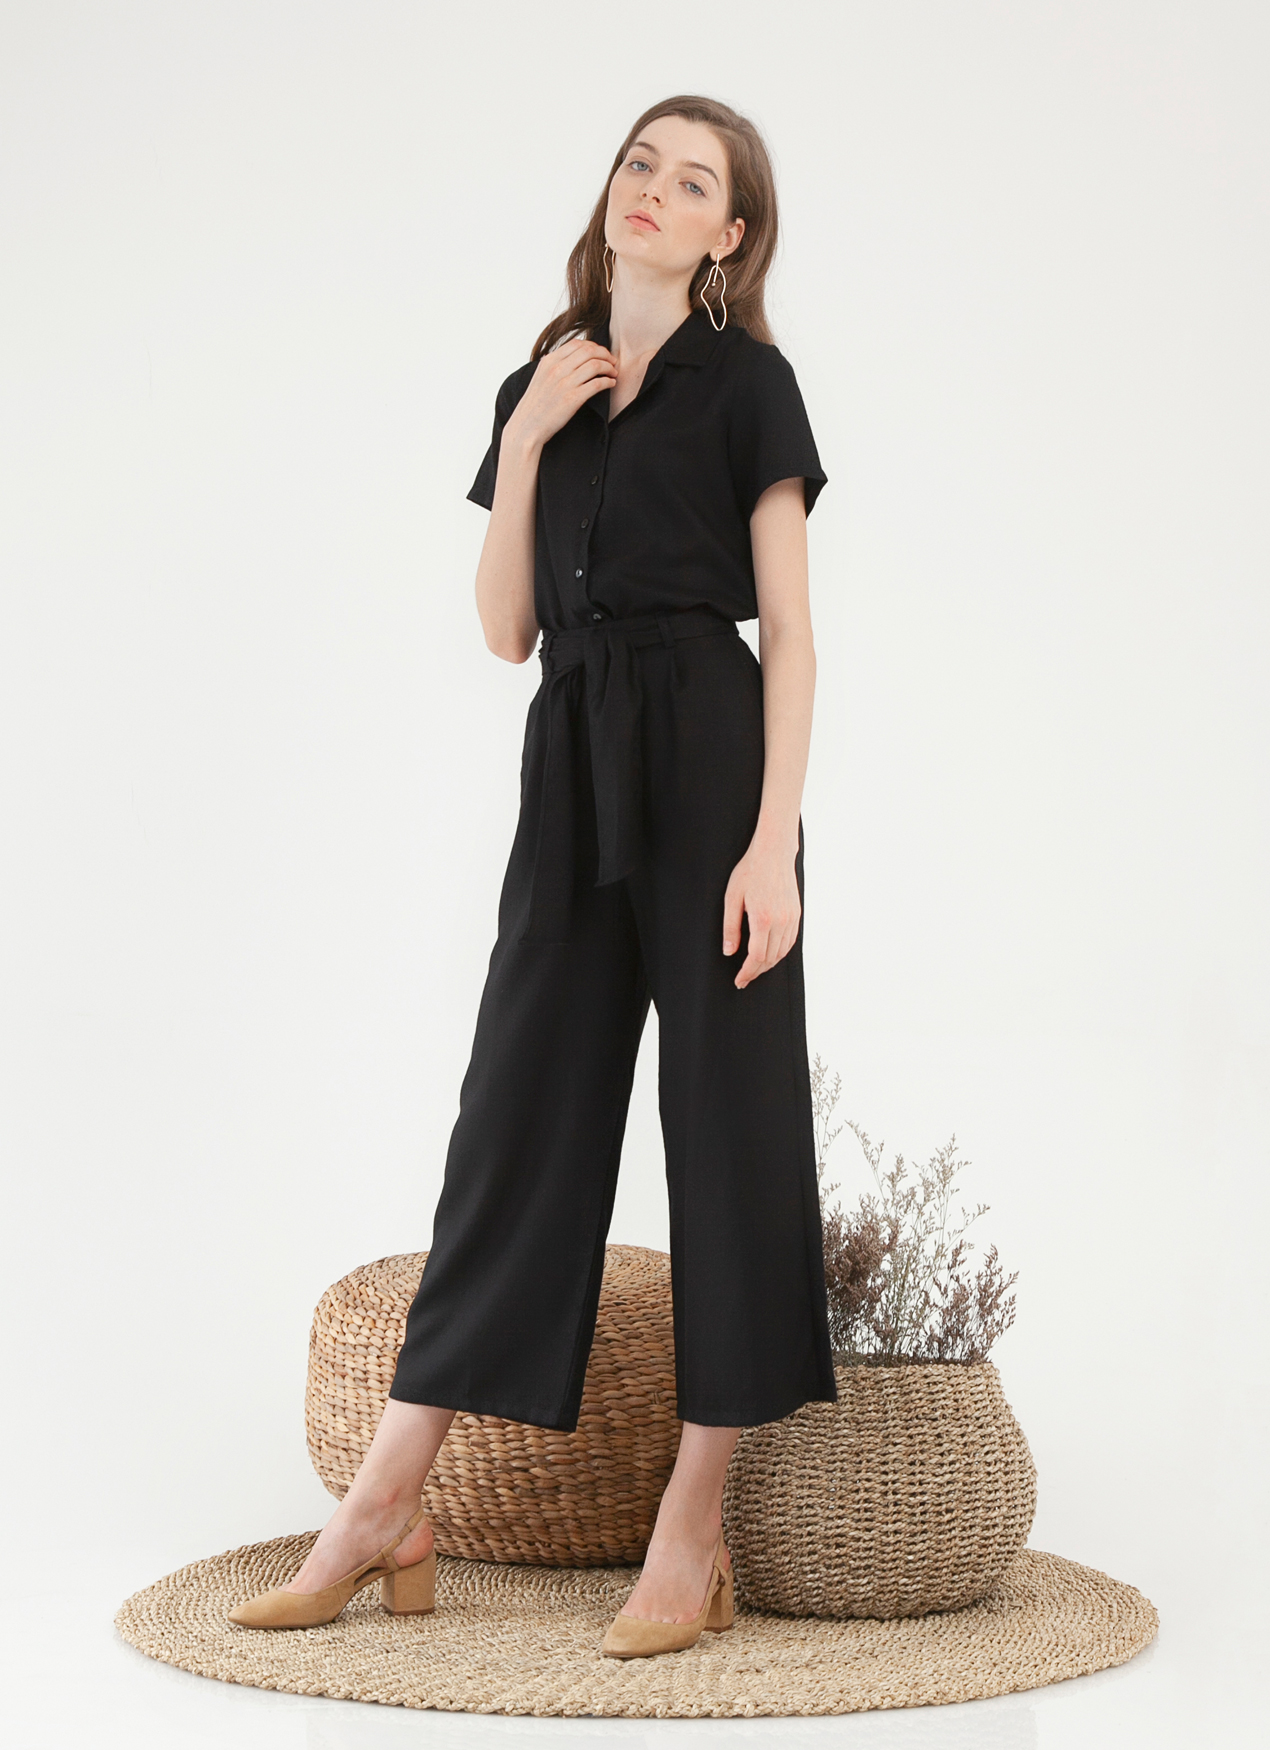 CLOTH INC Leica Culottes - Black